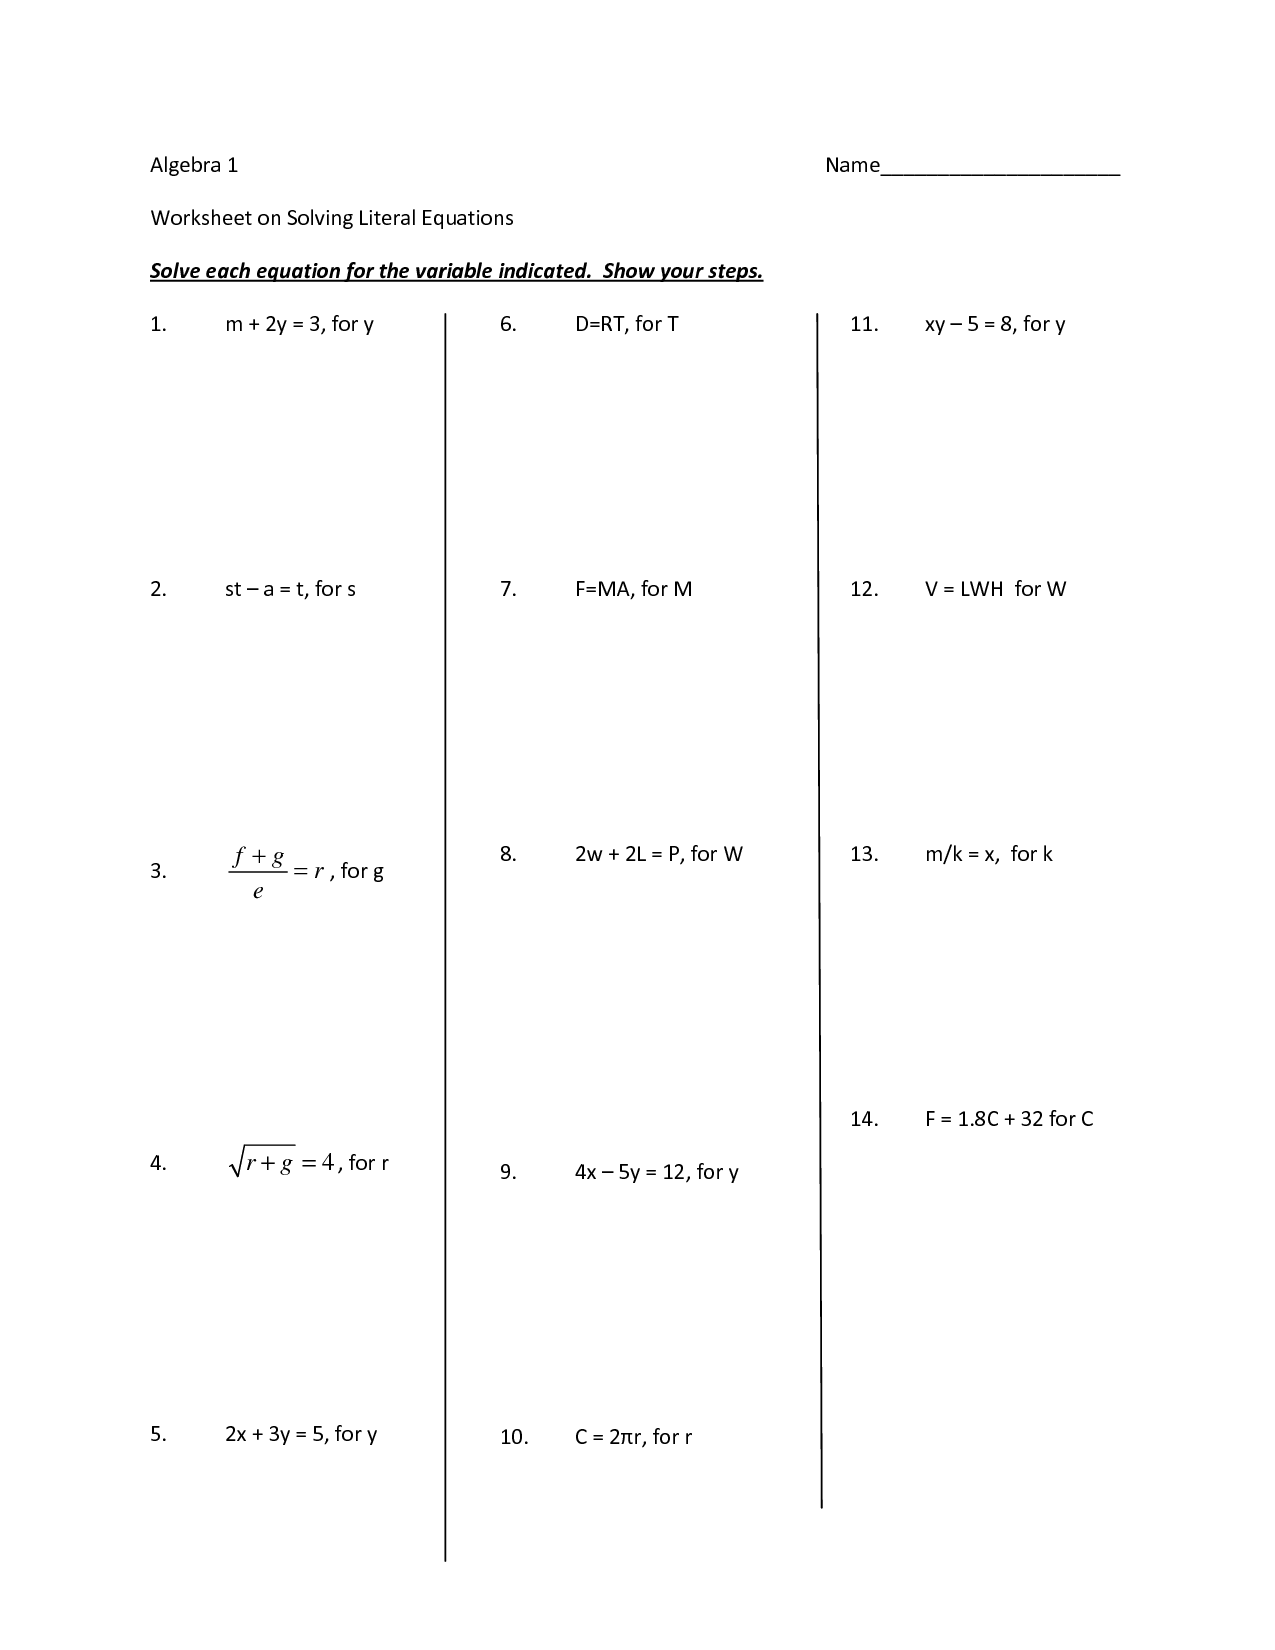 Solving Equations With Variables On Both Sides Practice Worksheet